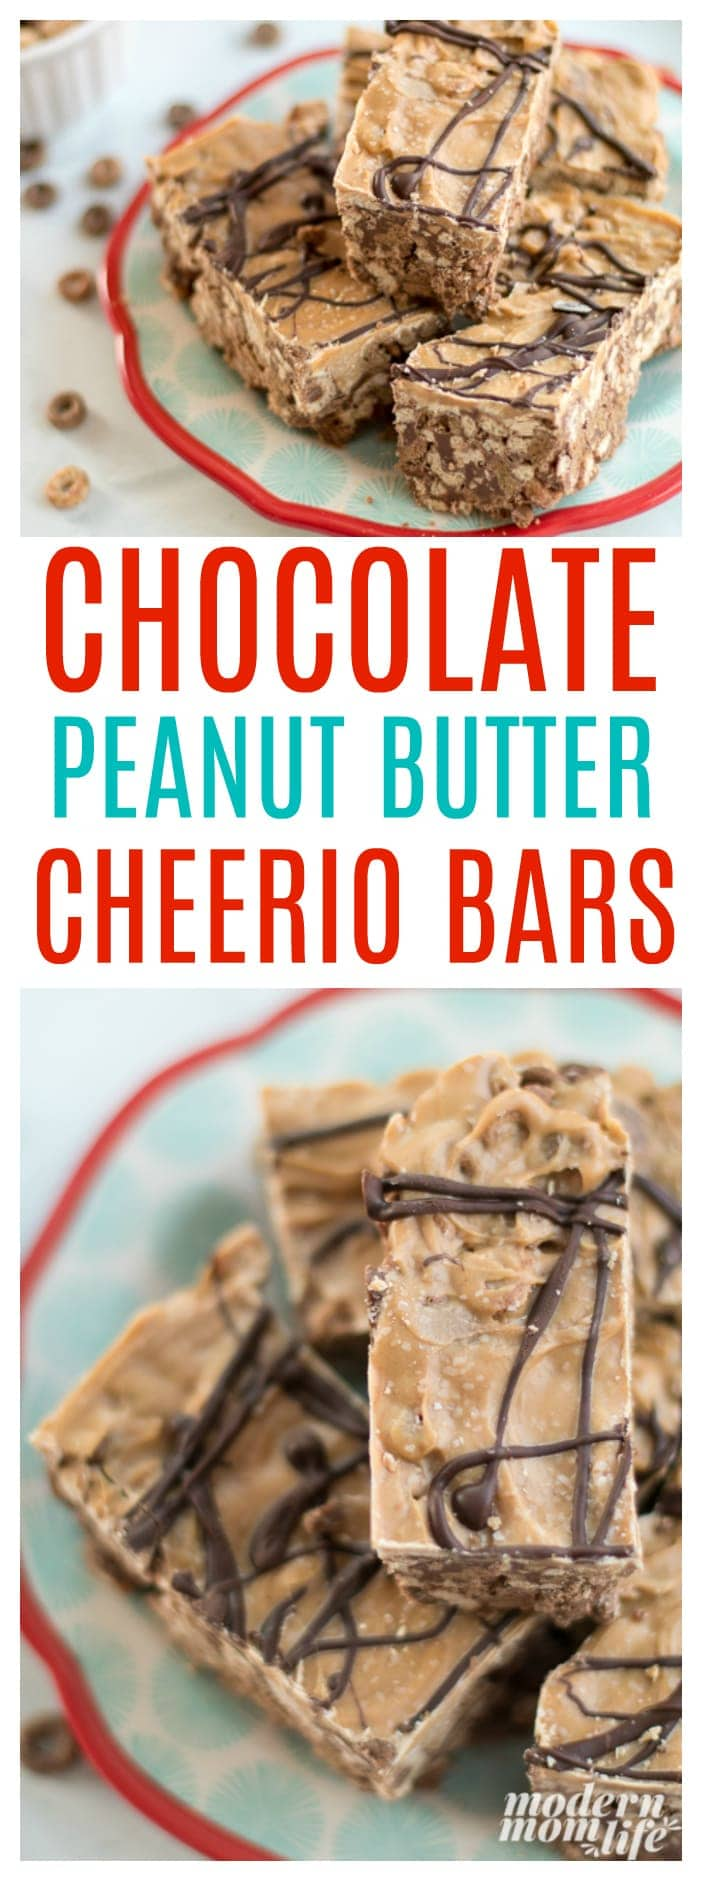 Chocolate Peanut Butter Cheerio Bars Pin